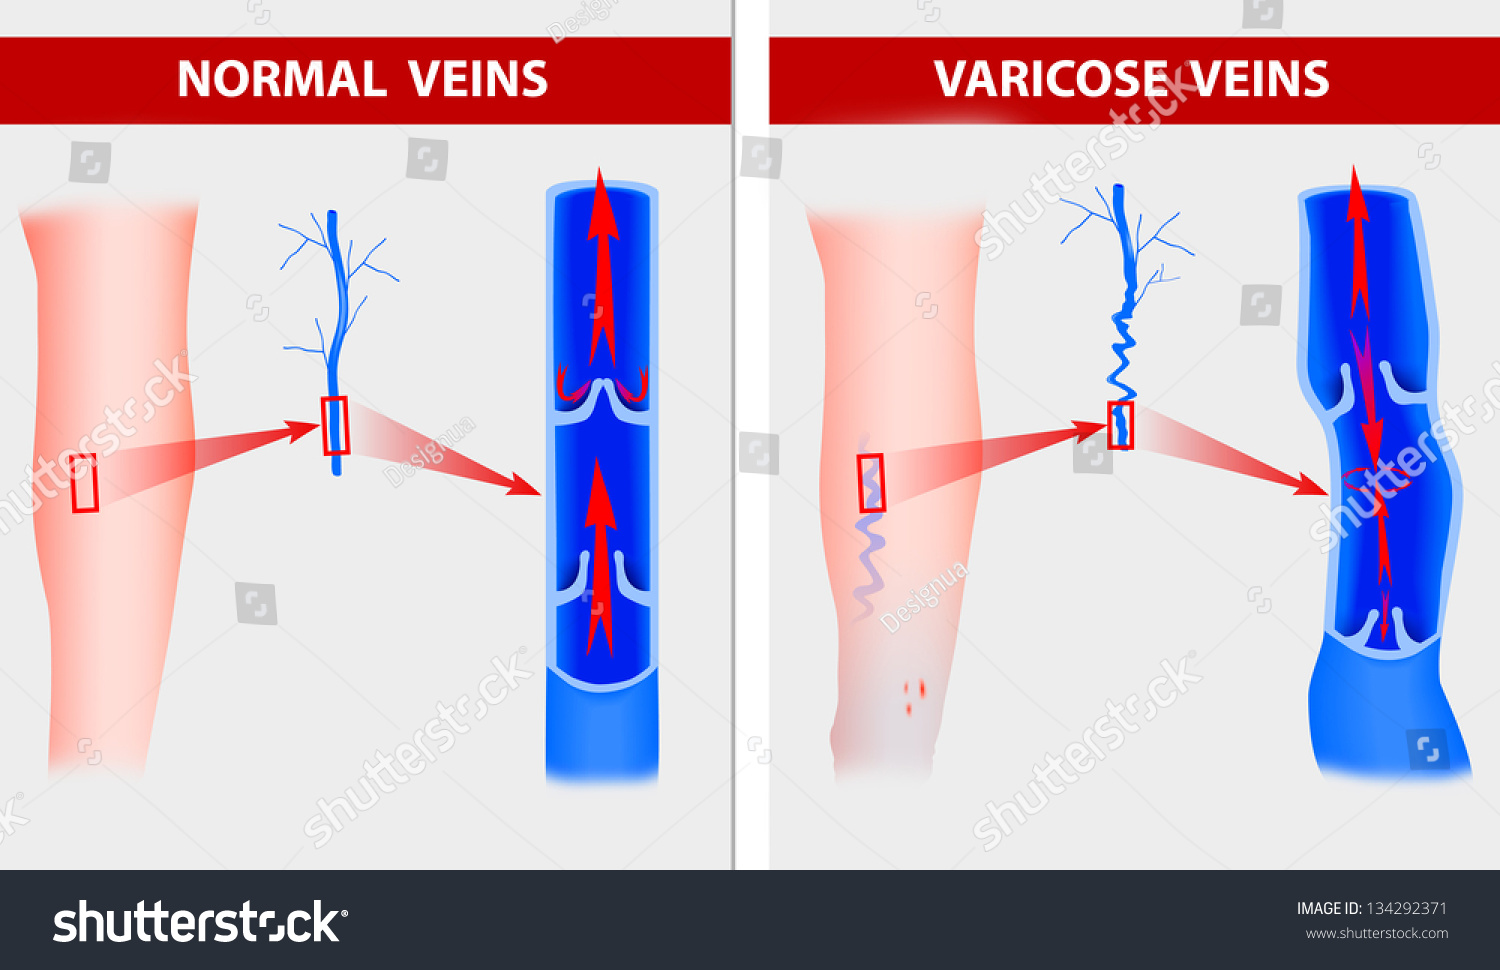 Varicose veins the illustration shows how a varicose vein forms in a